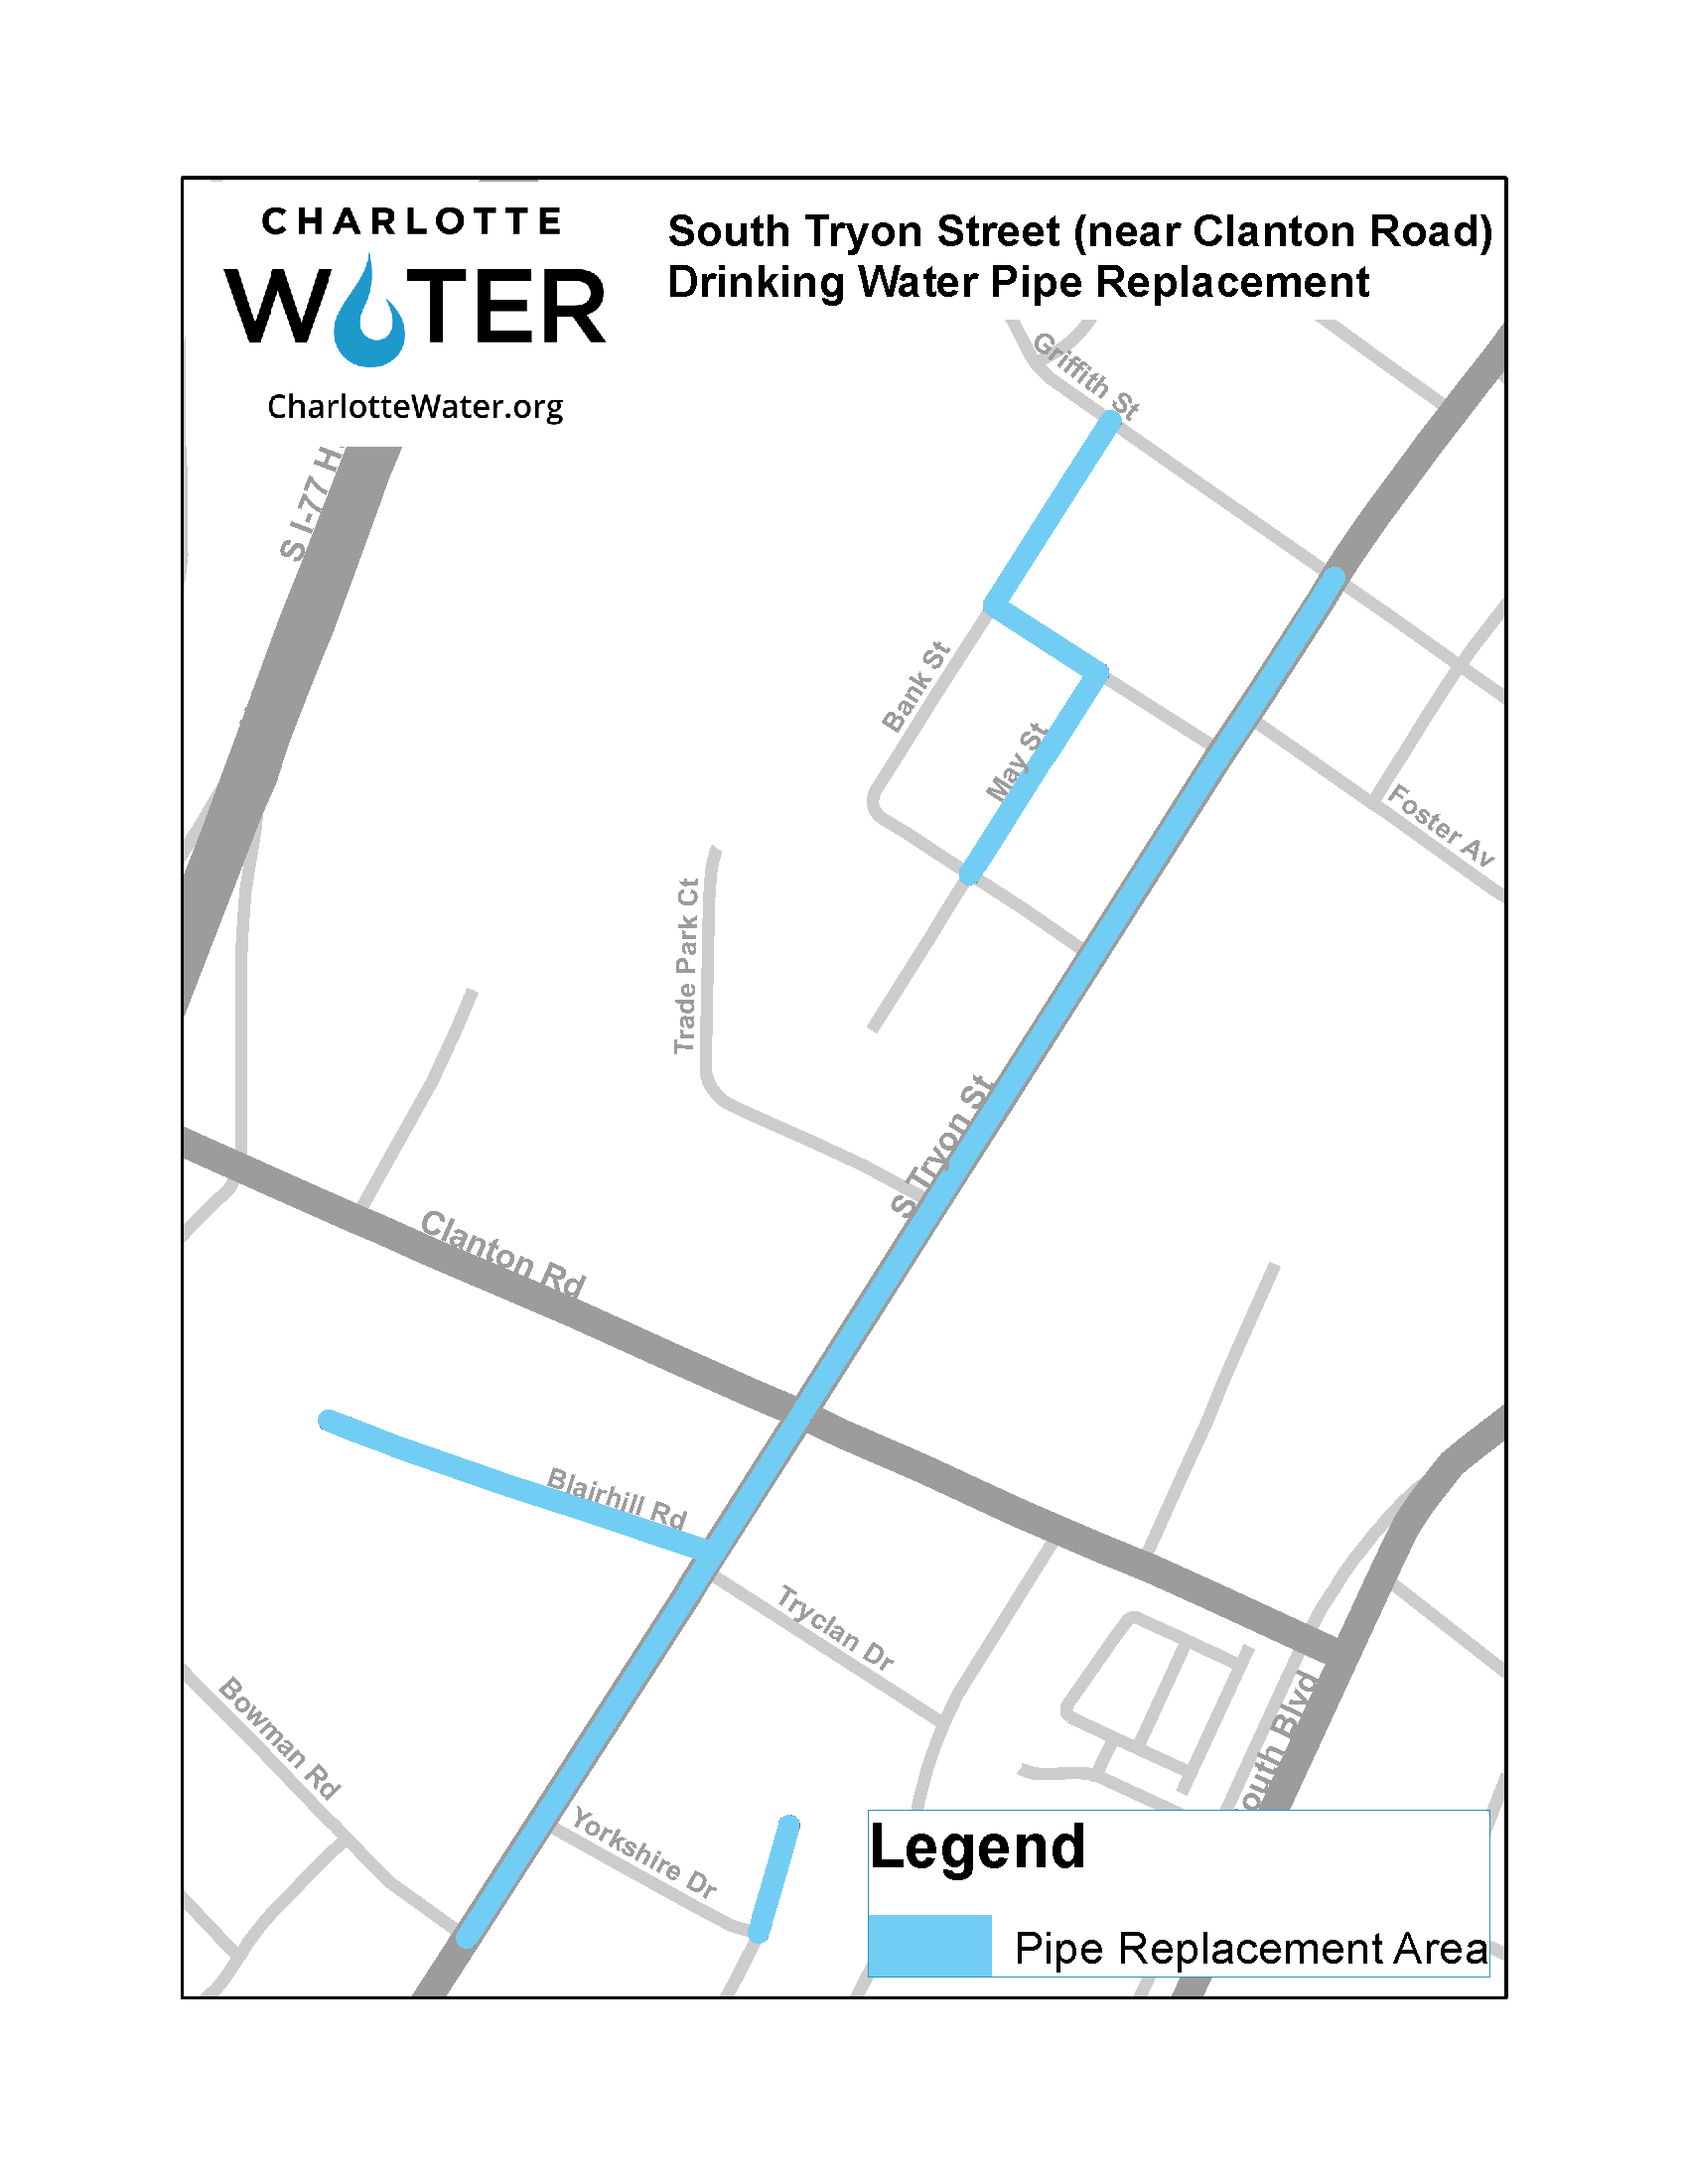 Water Replacement Project for South Tryon Street near